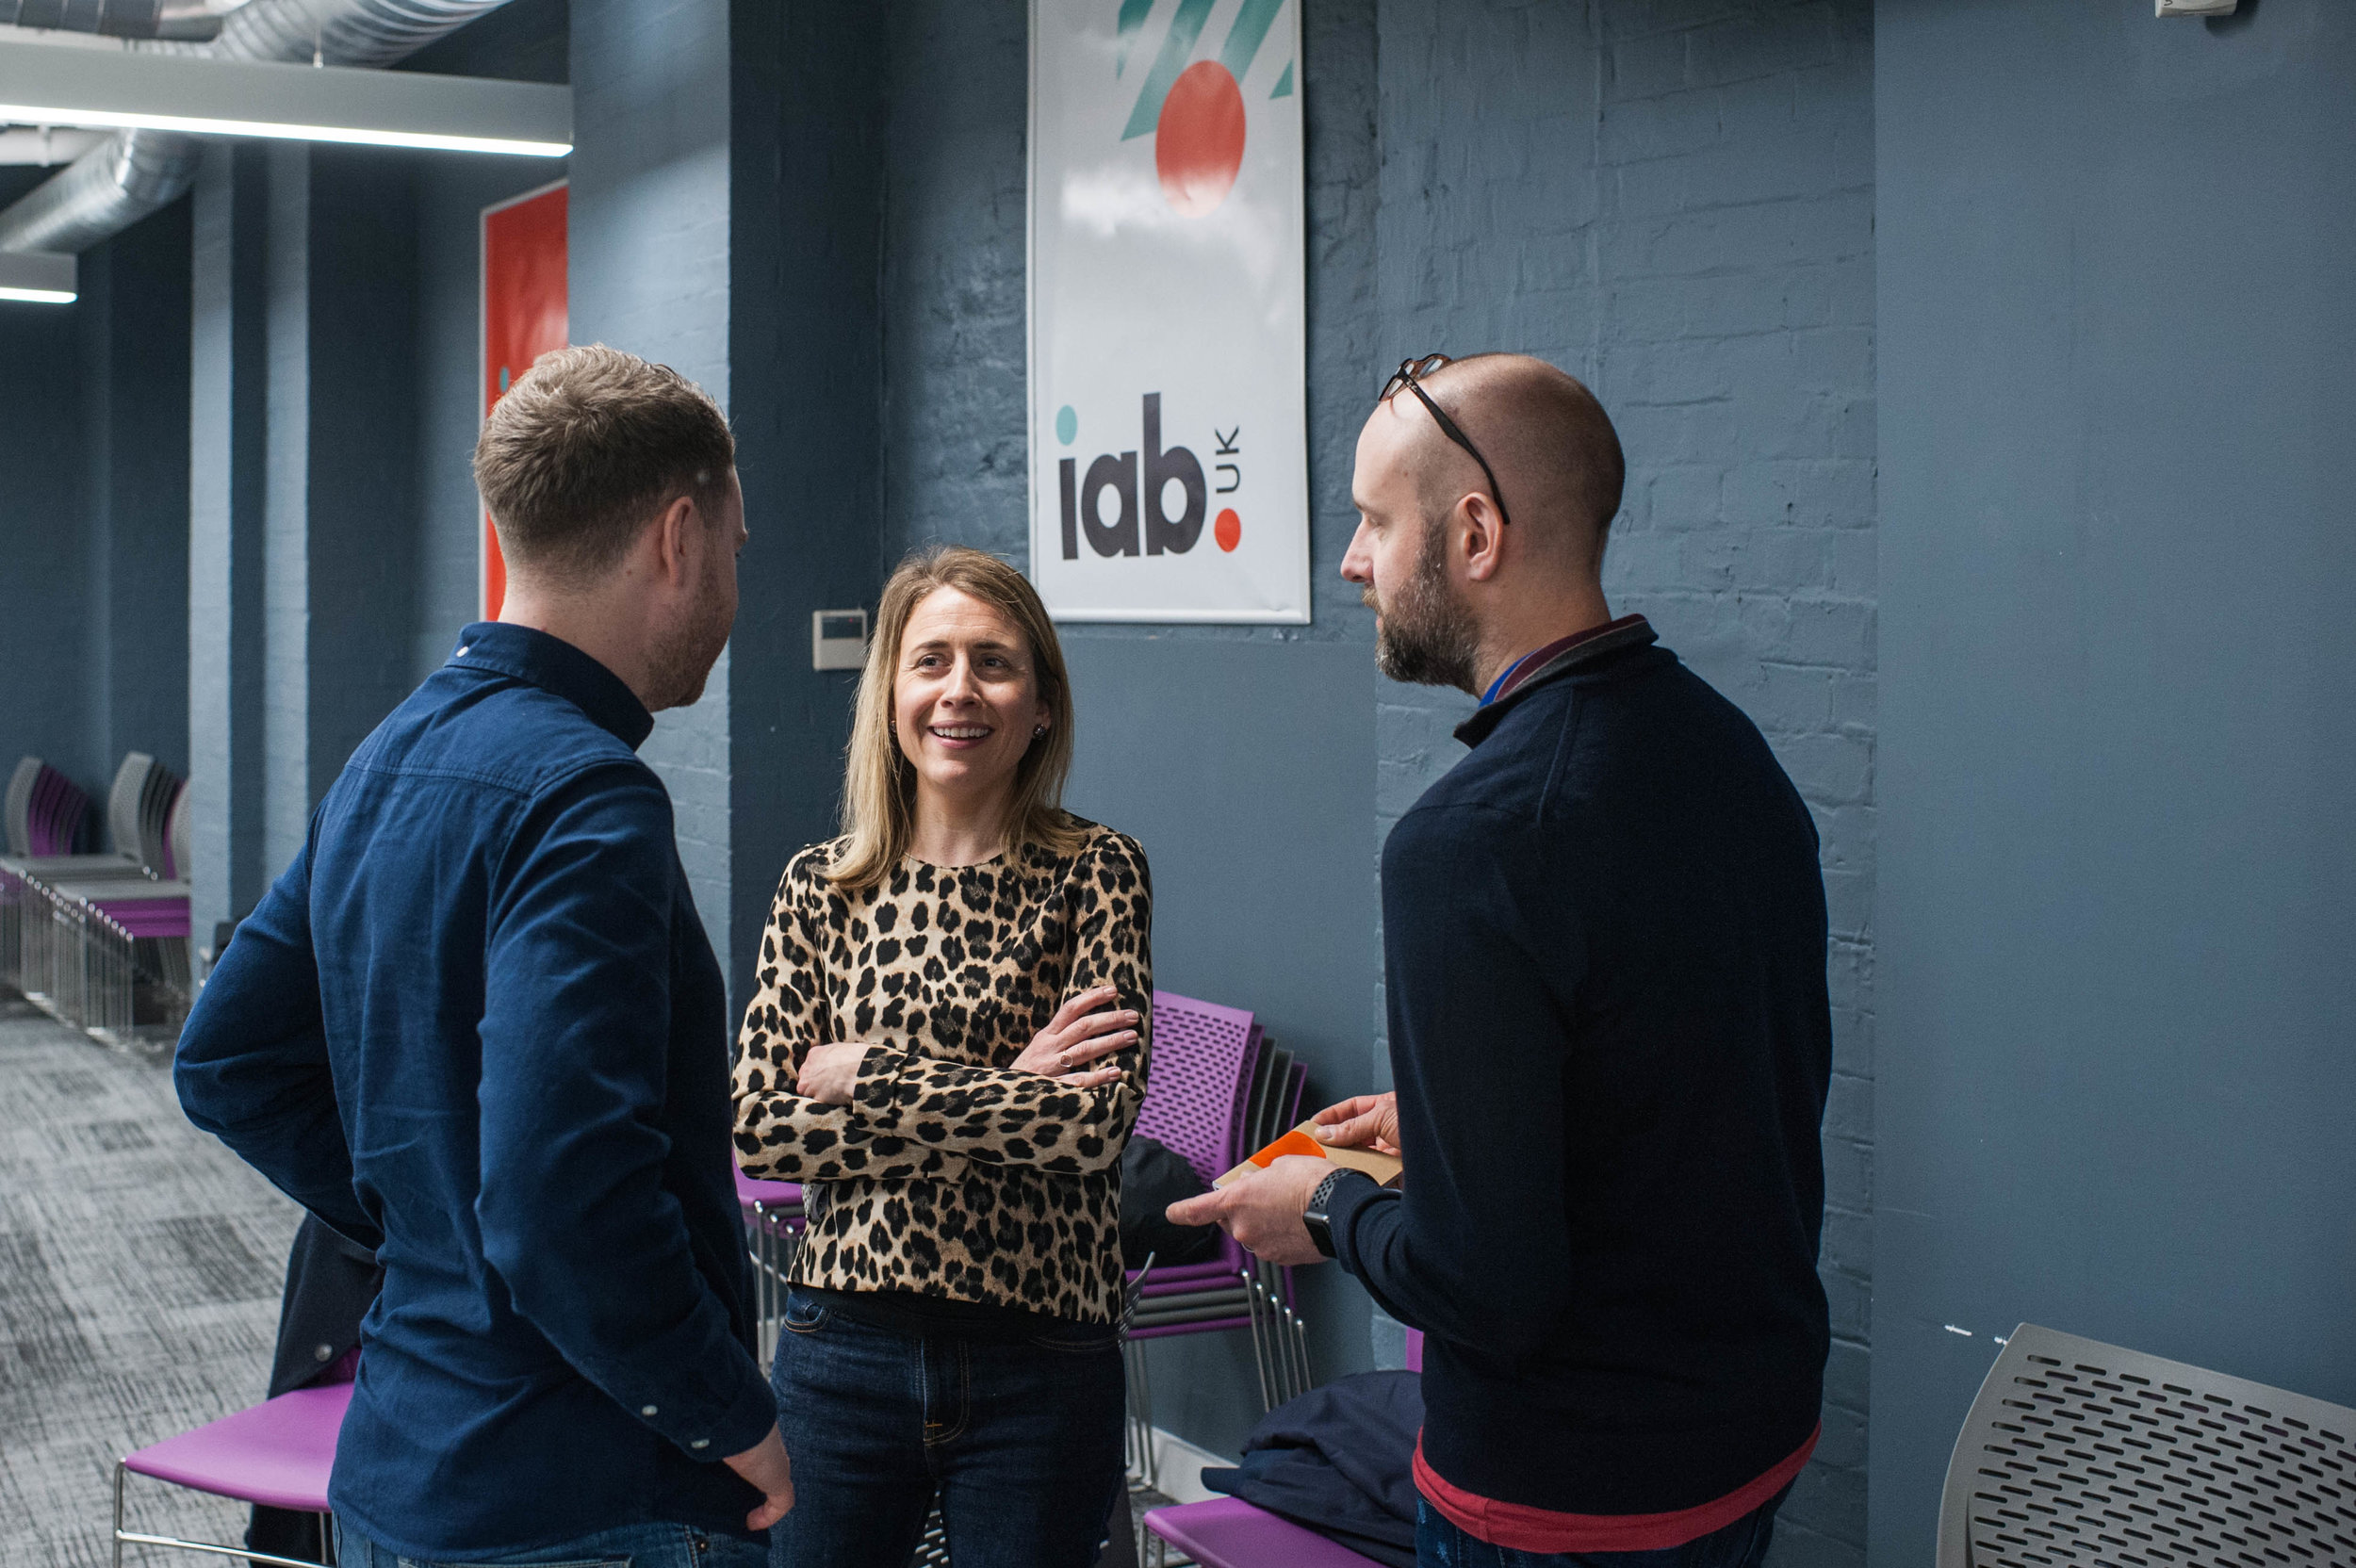 IAB Uk_Incidental Shots_SM (246 of 312).jpg